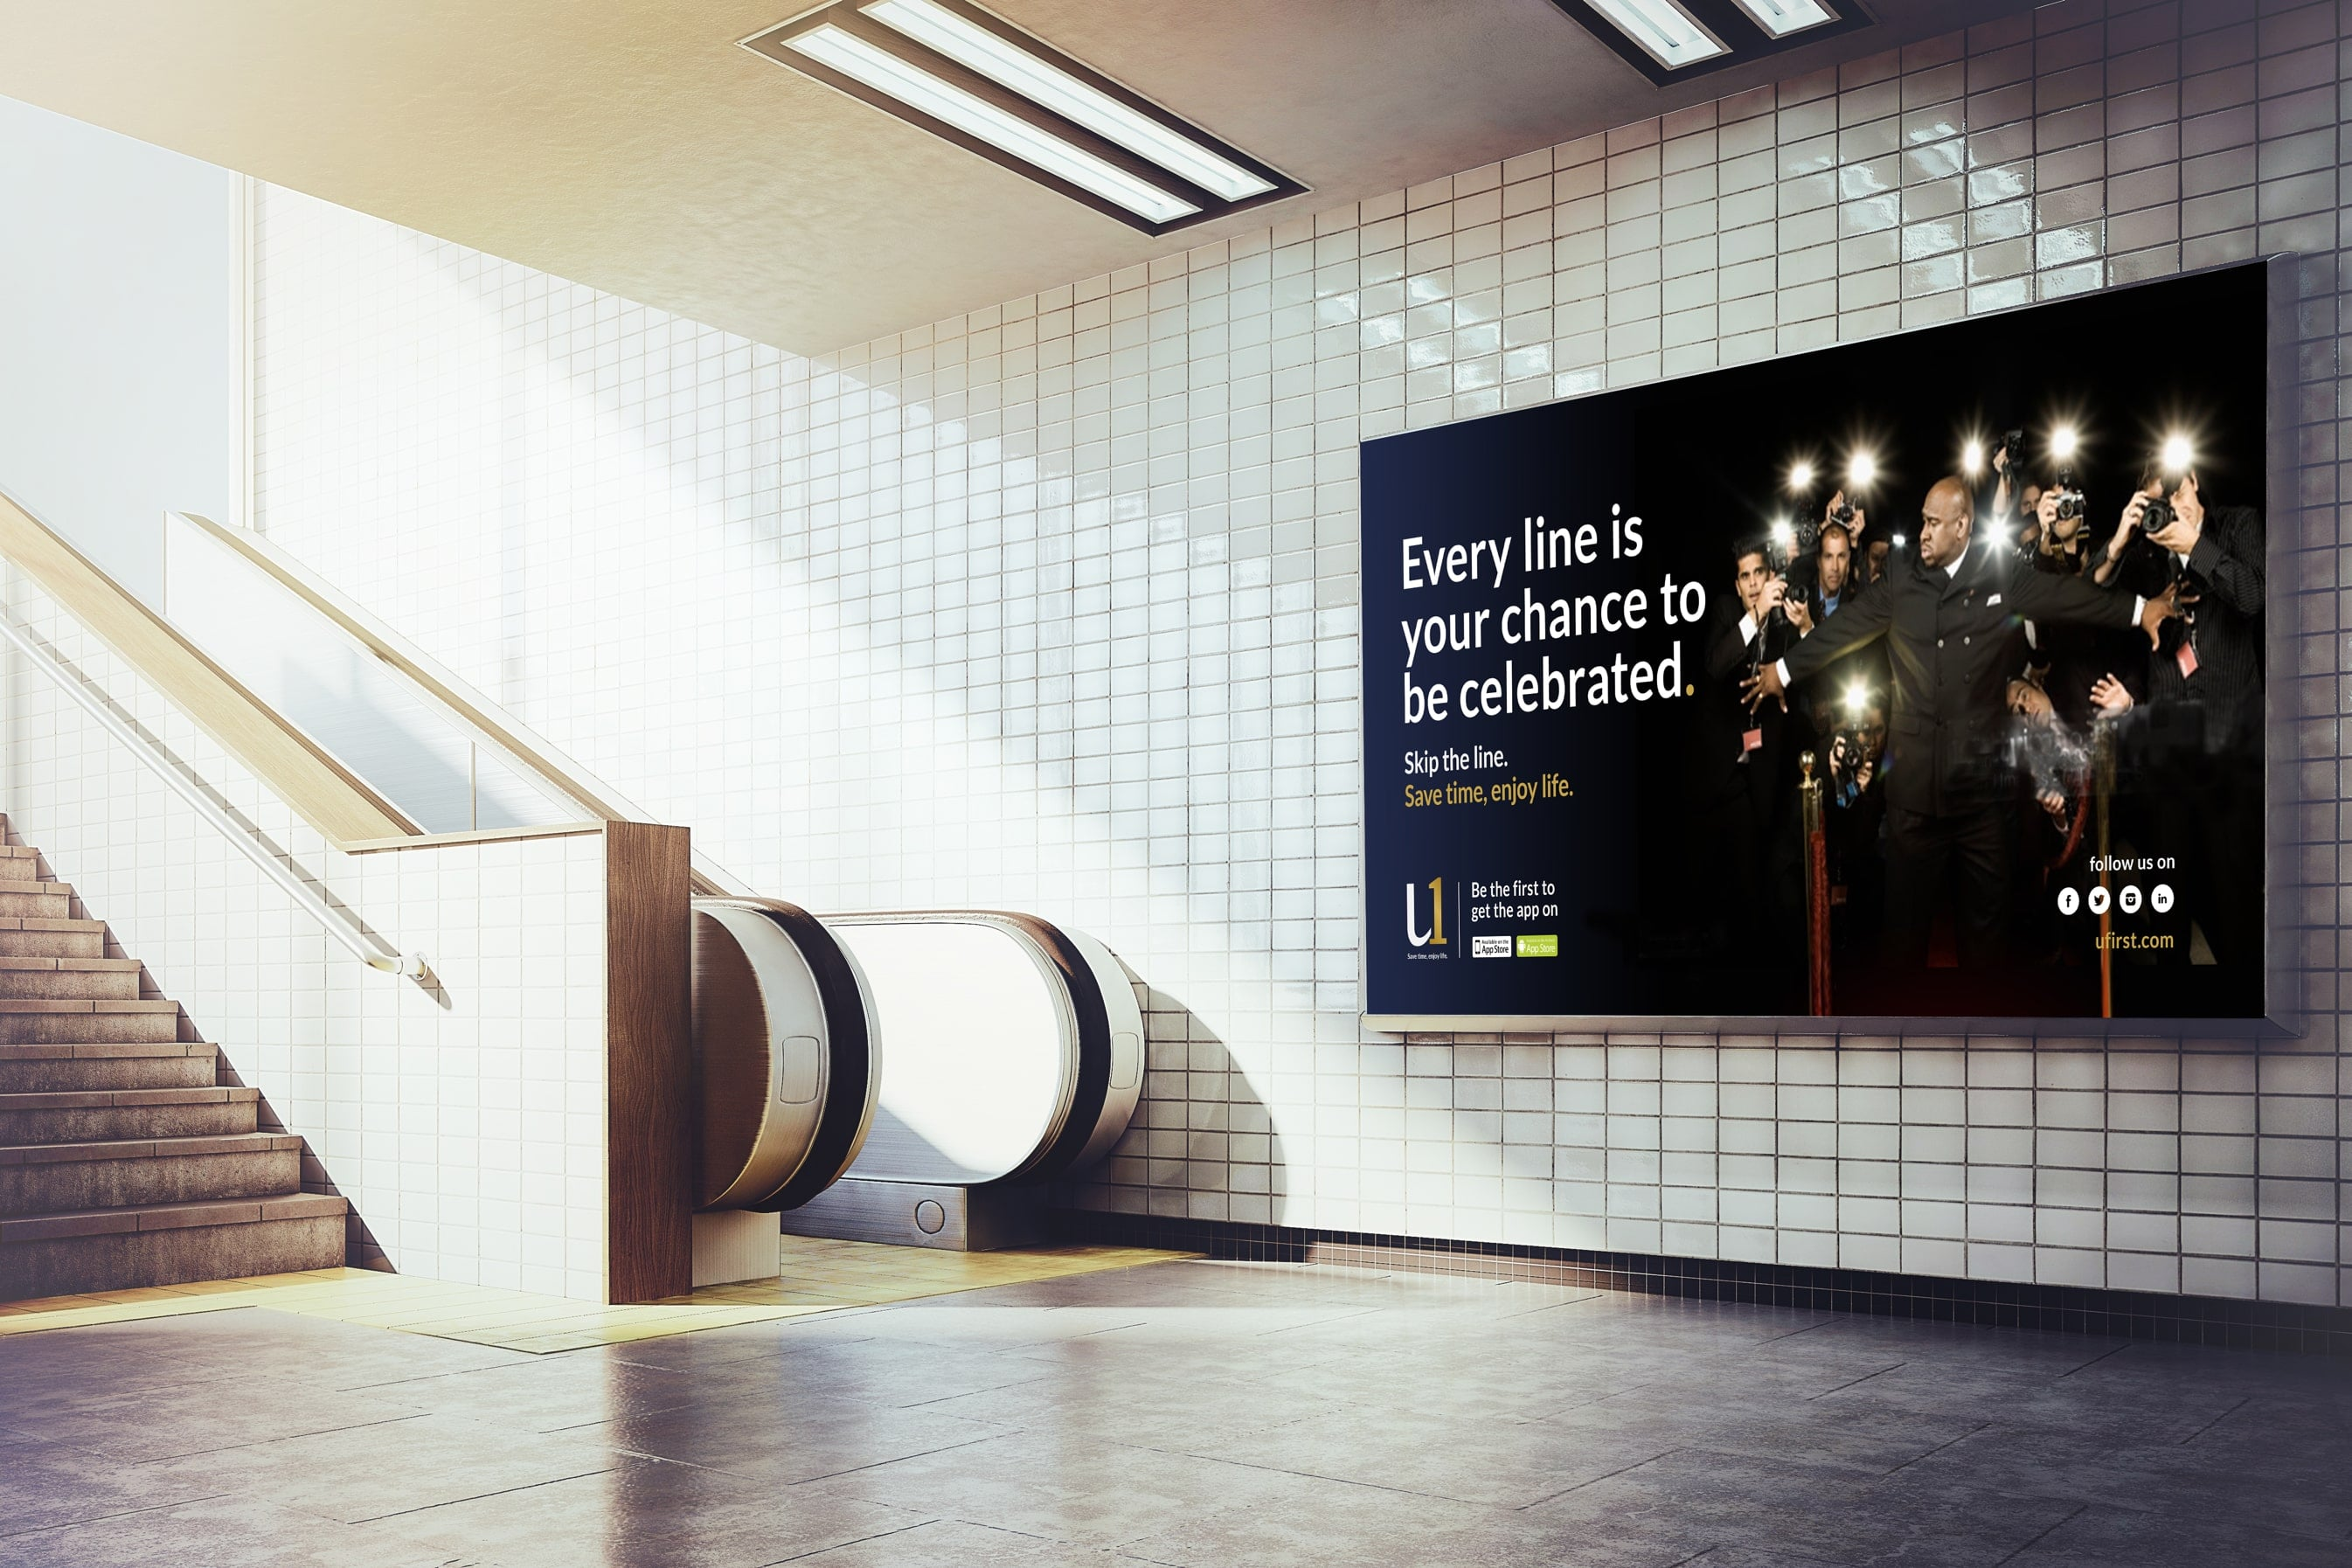 Luther Dsgn Adv agency conceived the creative marketing campaign for UFirst